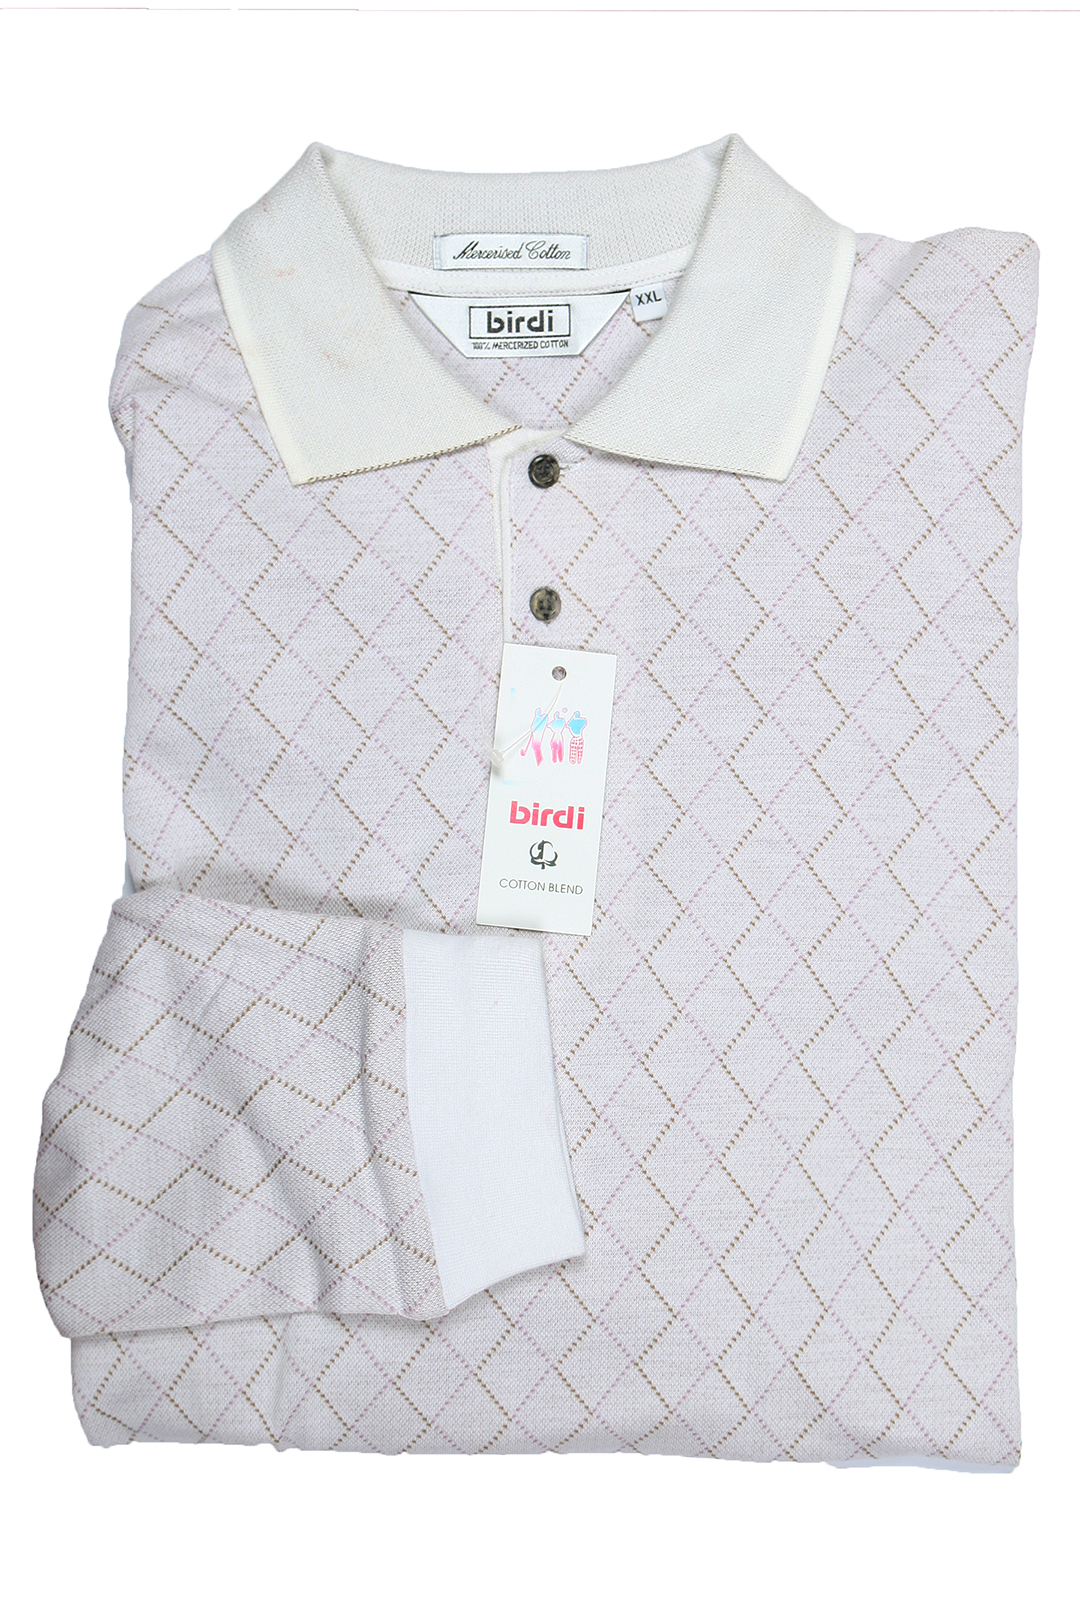 white-diamond-mercerized-men's-golf-shirt-ls-